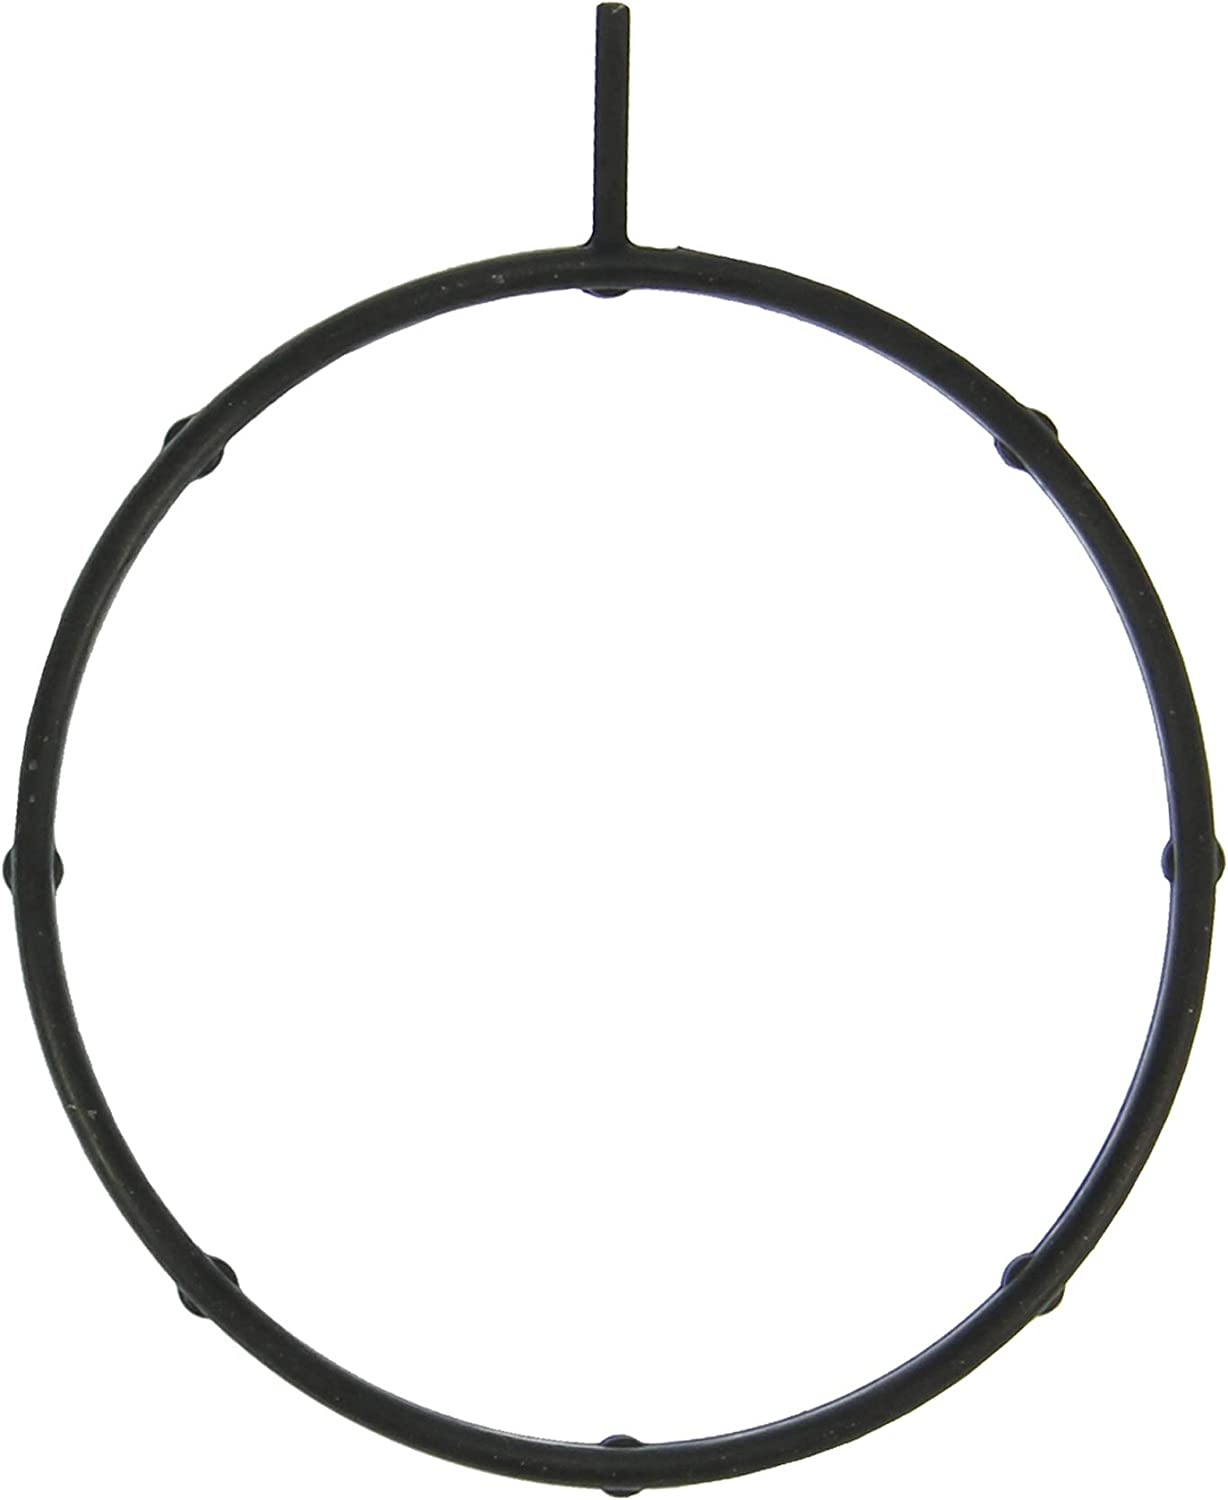 Fel-Pro 61634 Throttle OFFicial Gasket Mounting Body Max 73% OFF